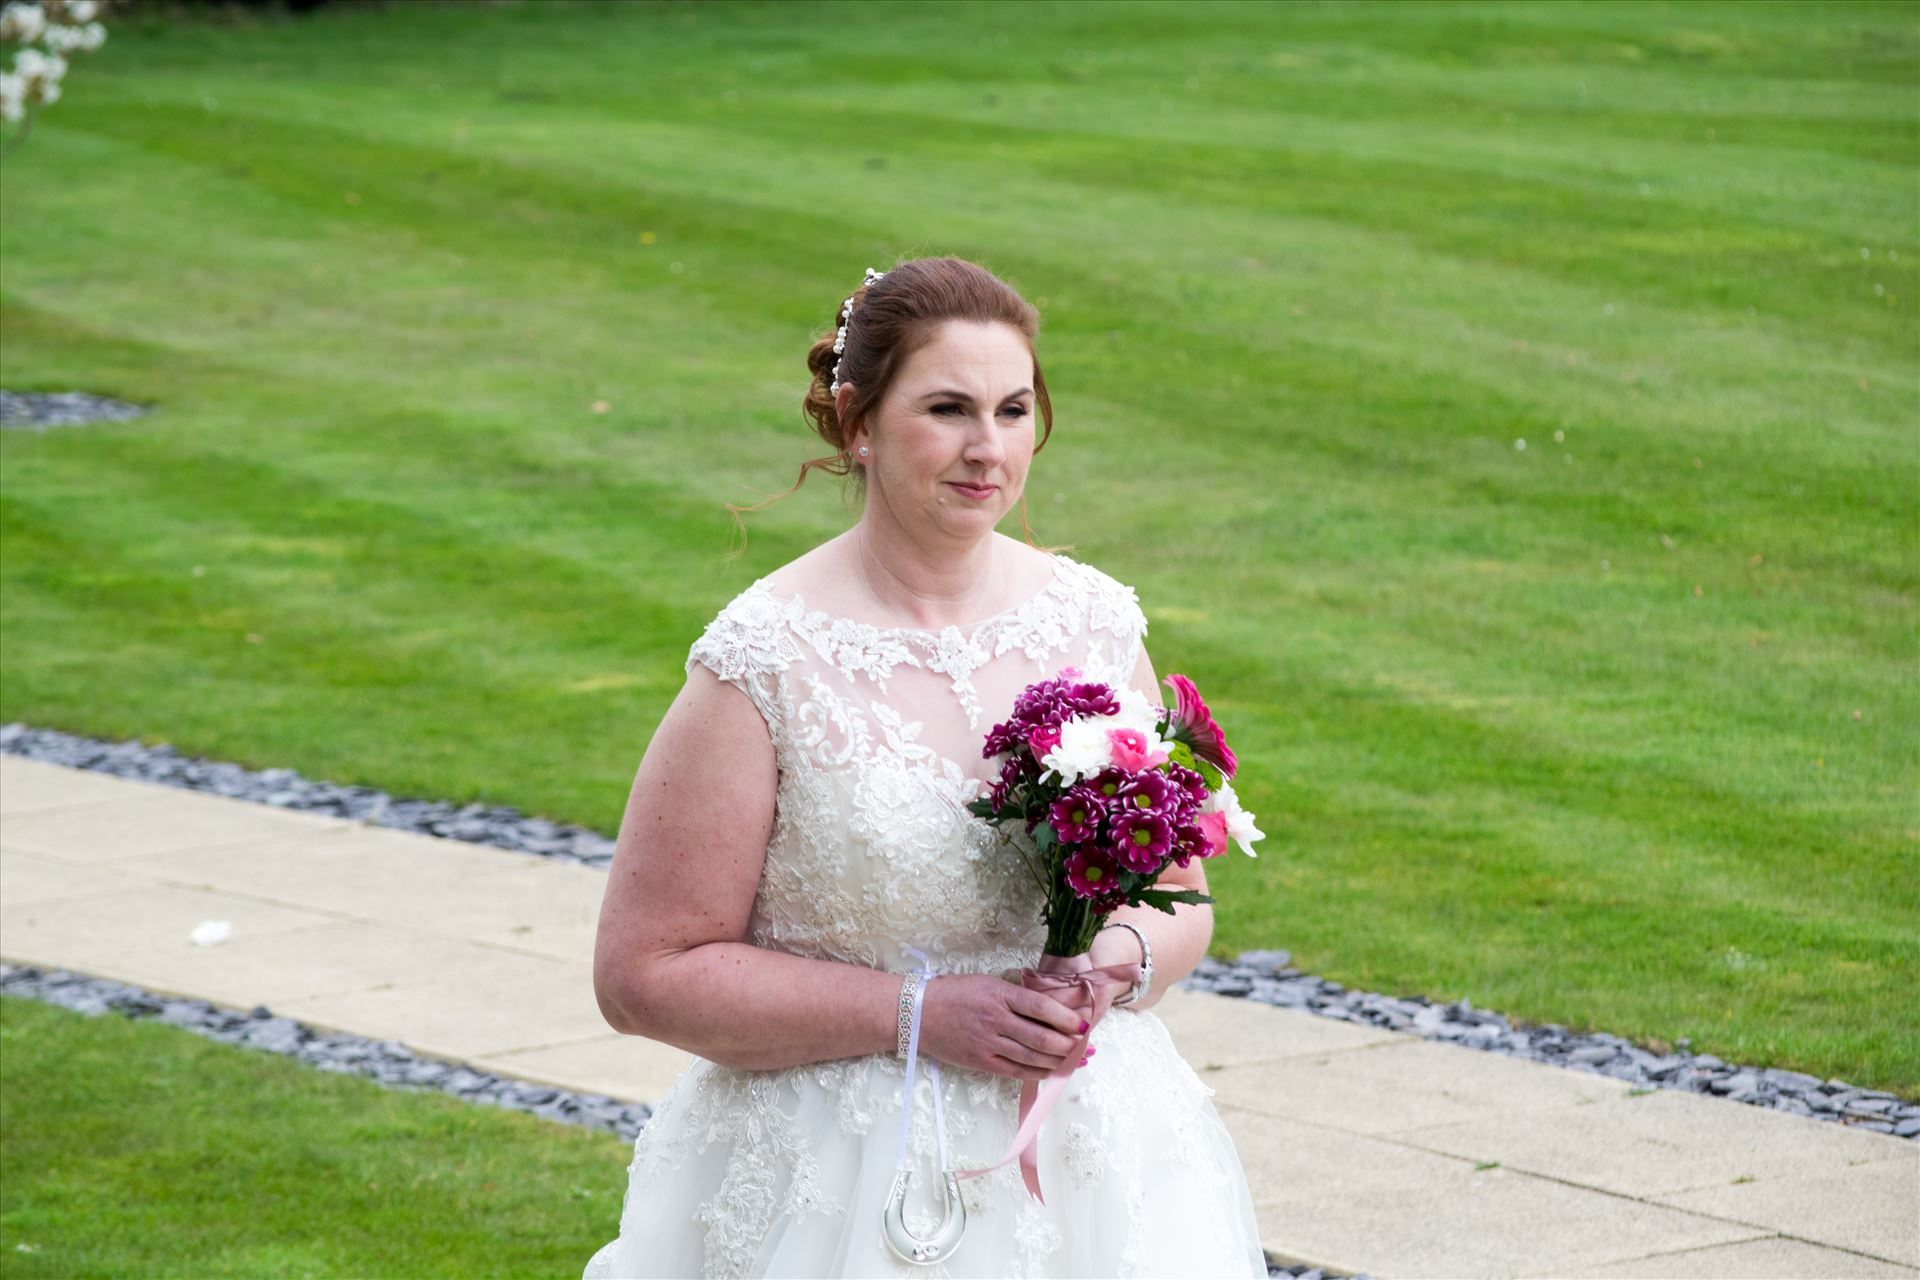 Nikky and Neils wedding-a19.jpg -  by AJ Stoves Photography